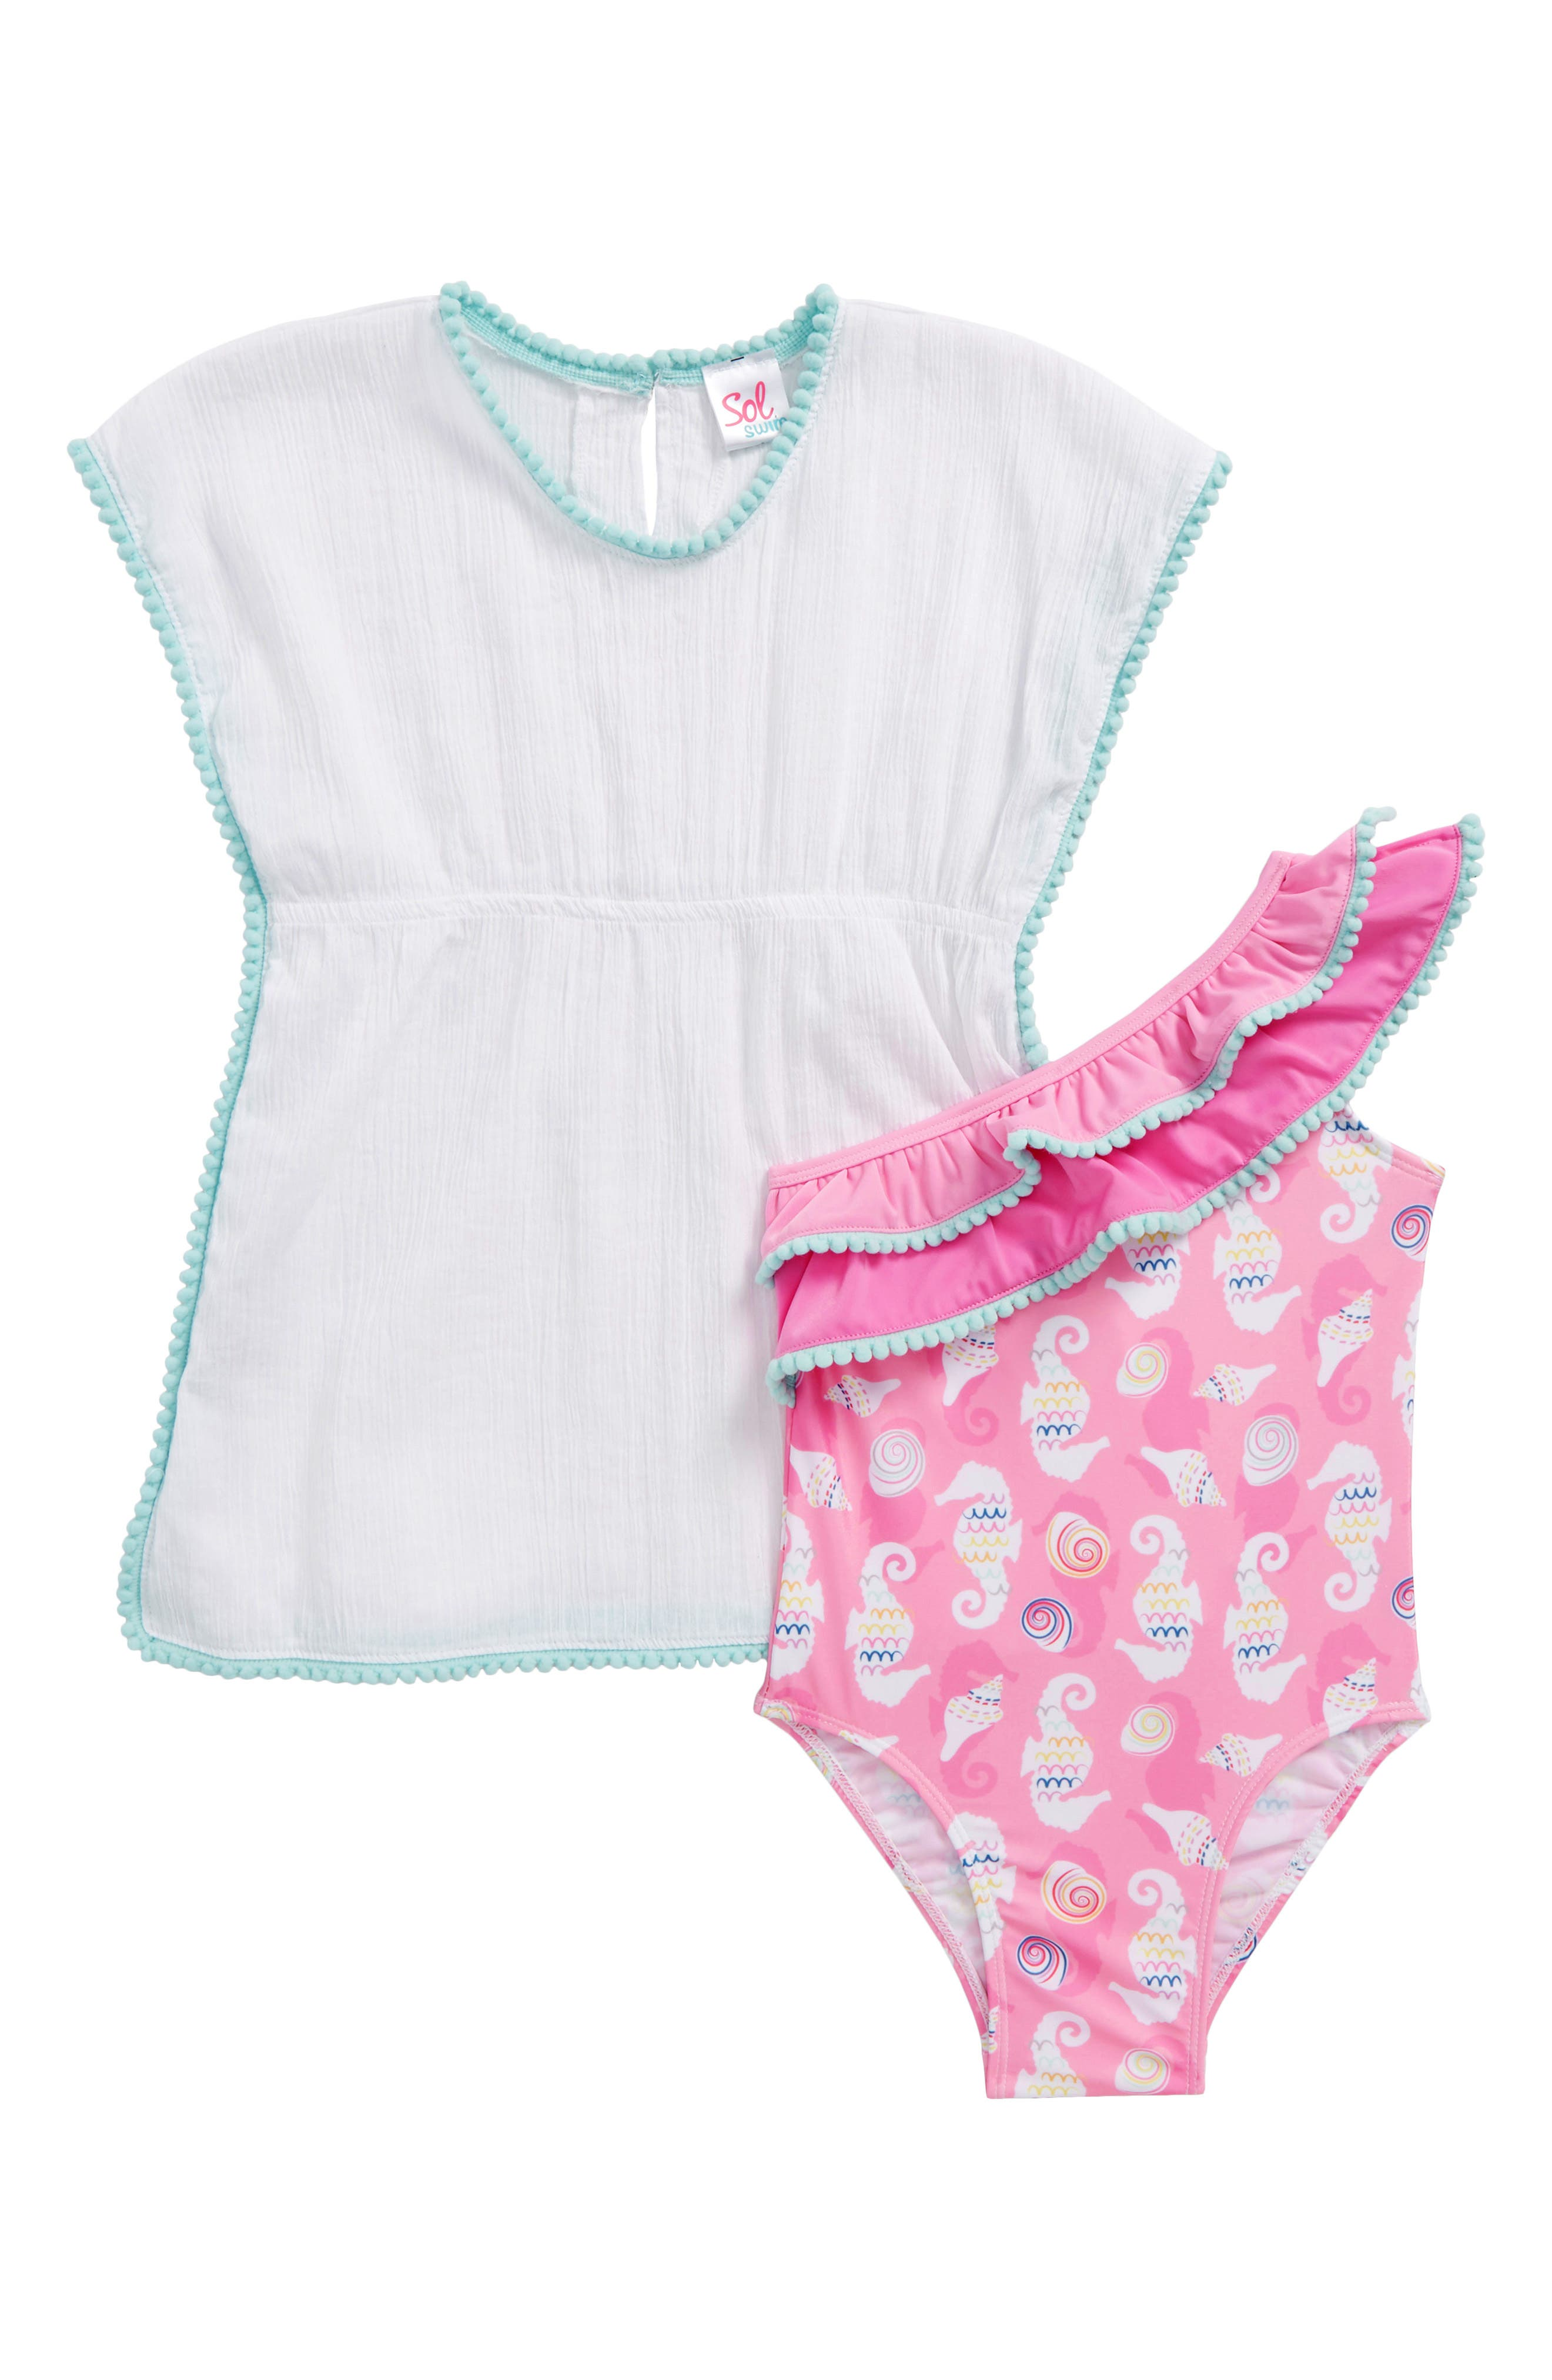 Seahorse One-Piece Swimsuit & Cover-Up Set,                             Main thumbnail 1, color,